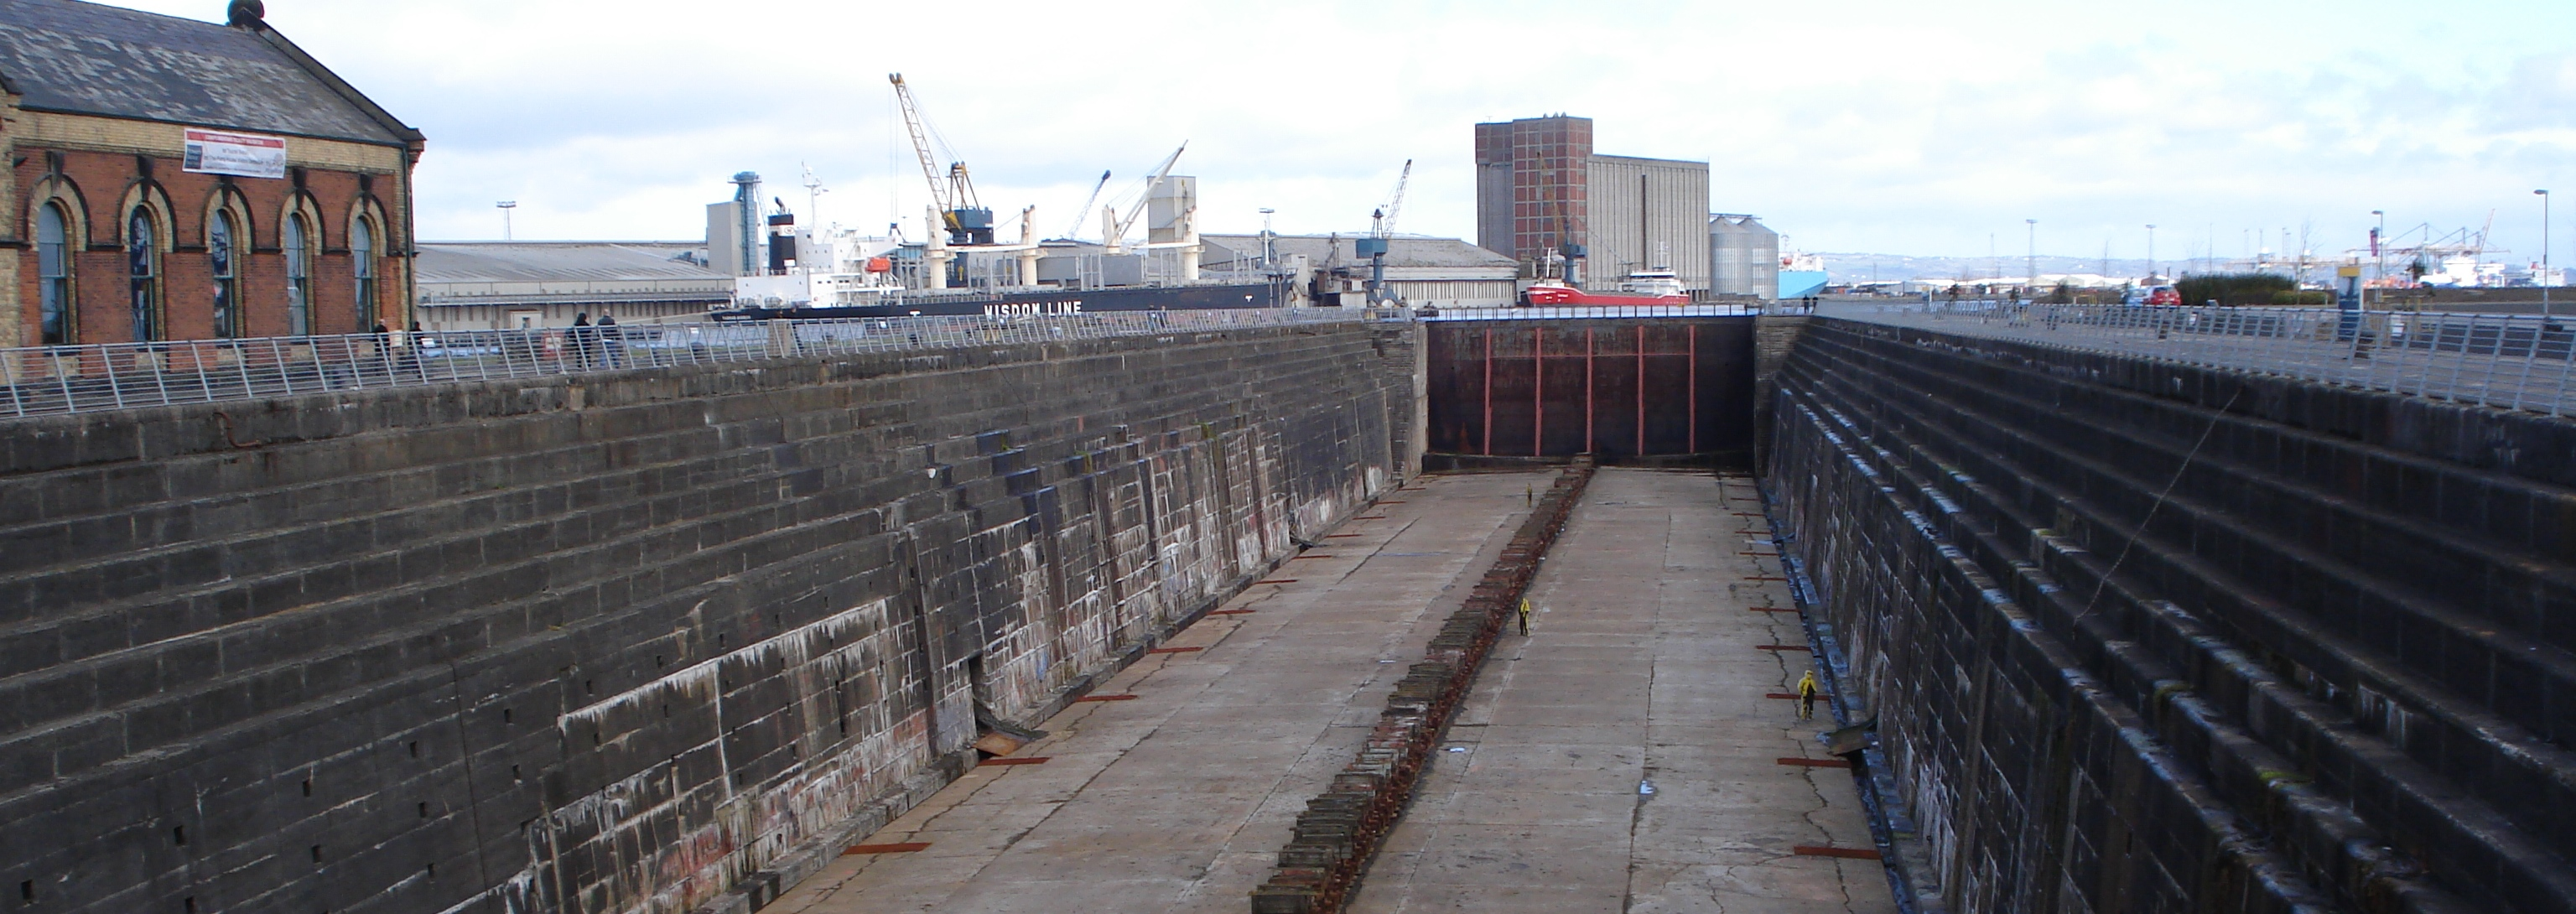 A dry dock, not at Hog Island